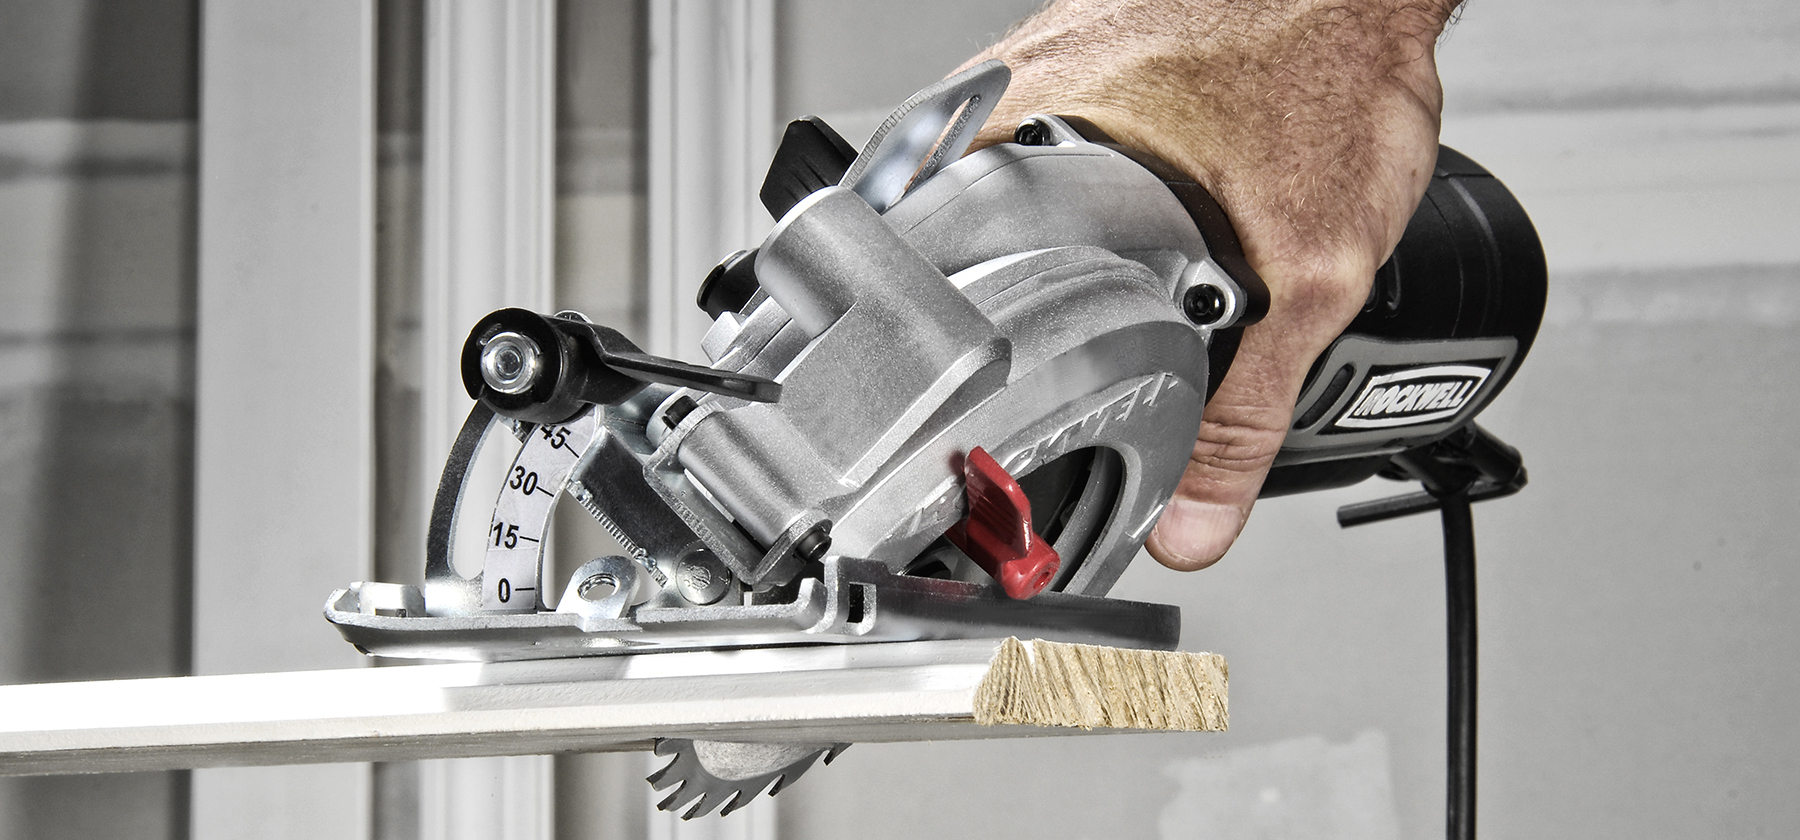 Making a Case for the Compact Circular Saw 2